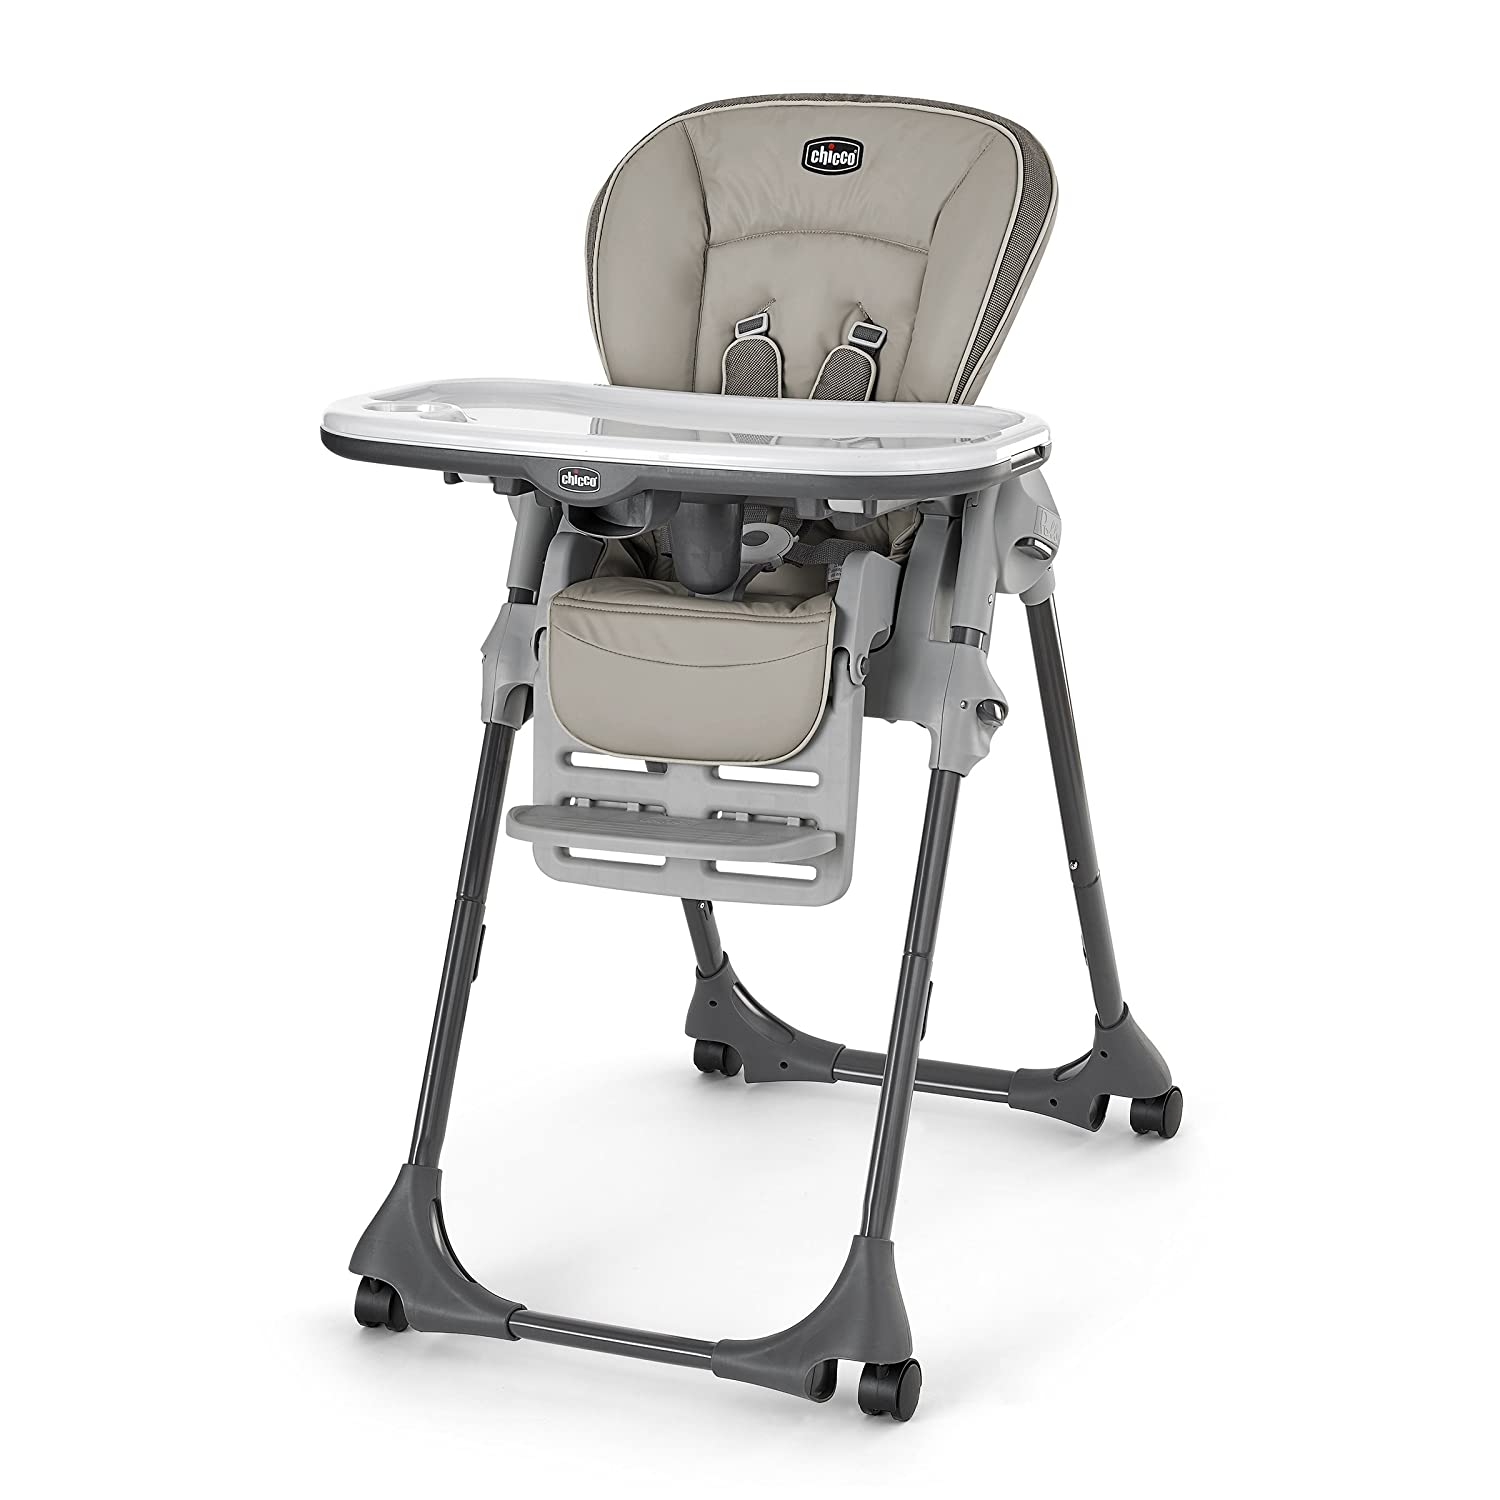 Space saver high chair boy - Chicco Vinyl Polly High Chair Papyrus